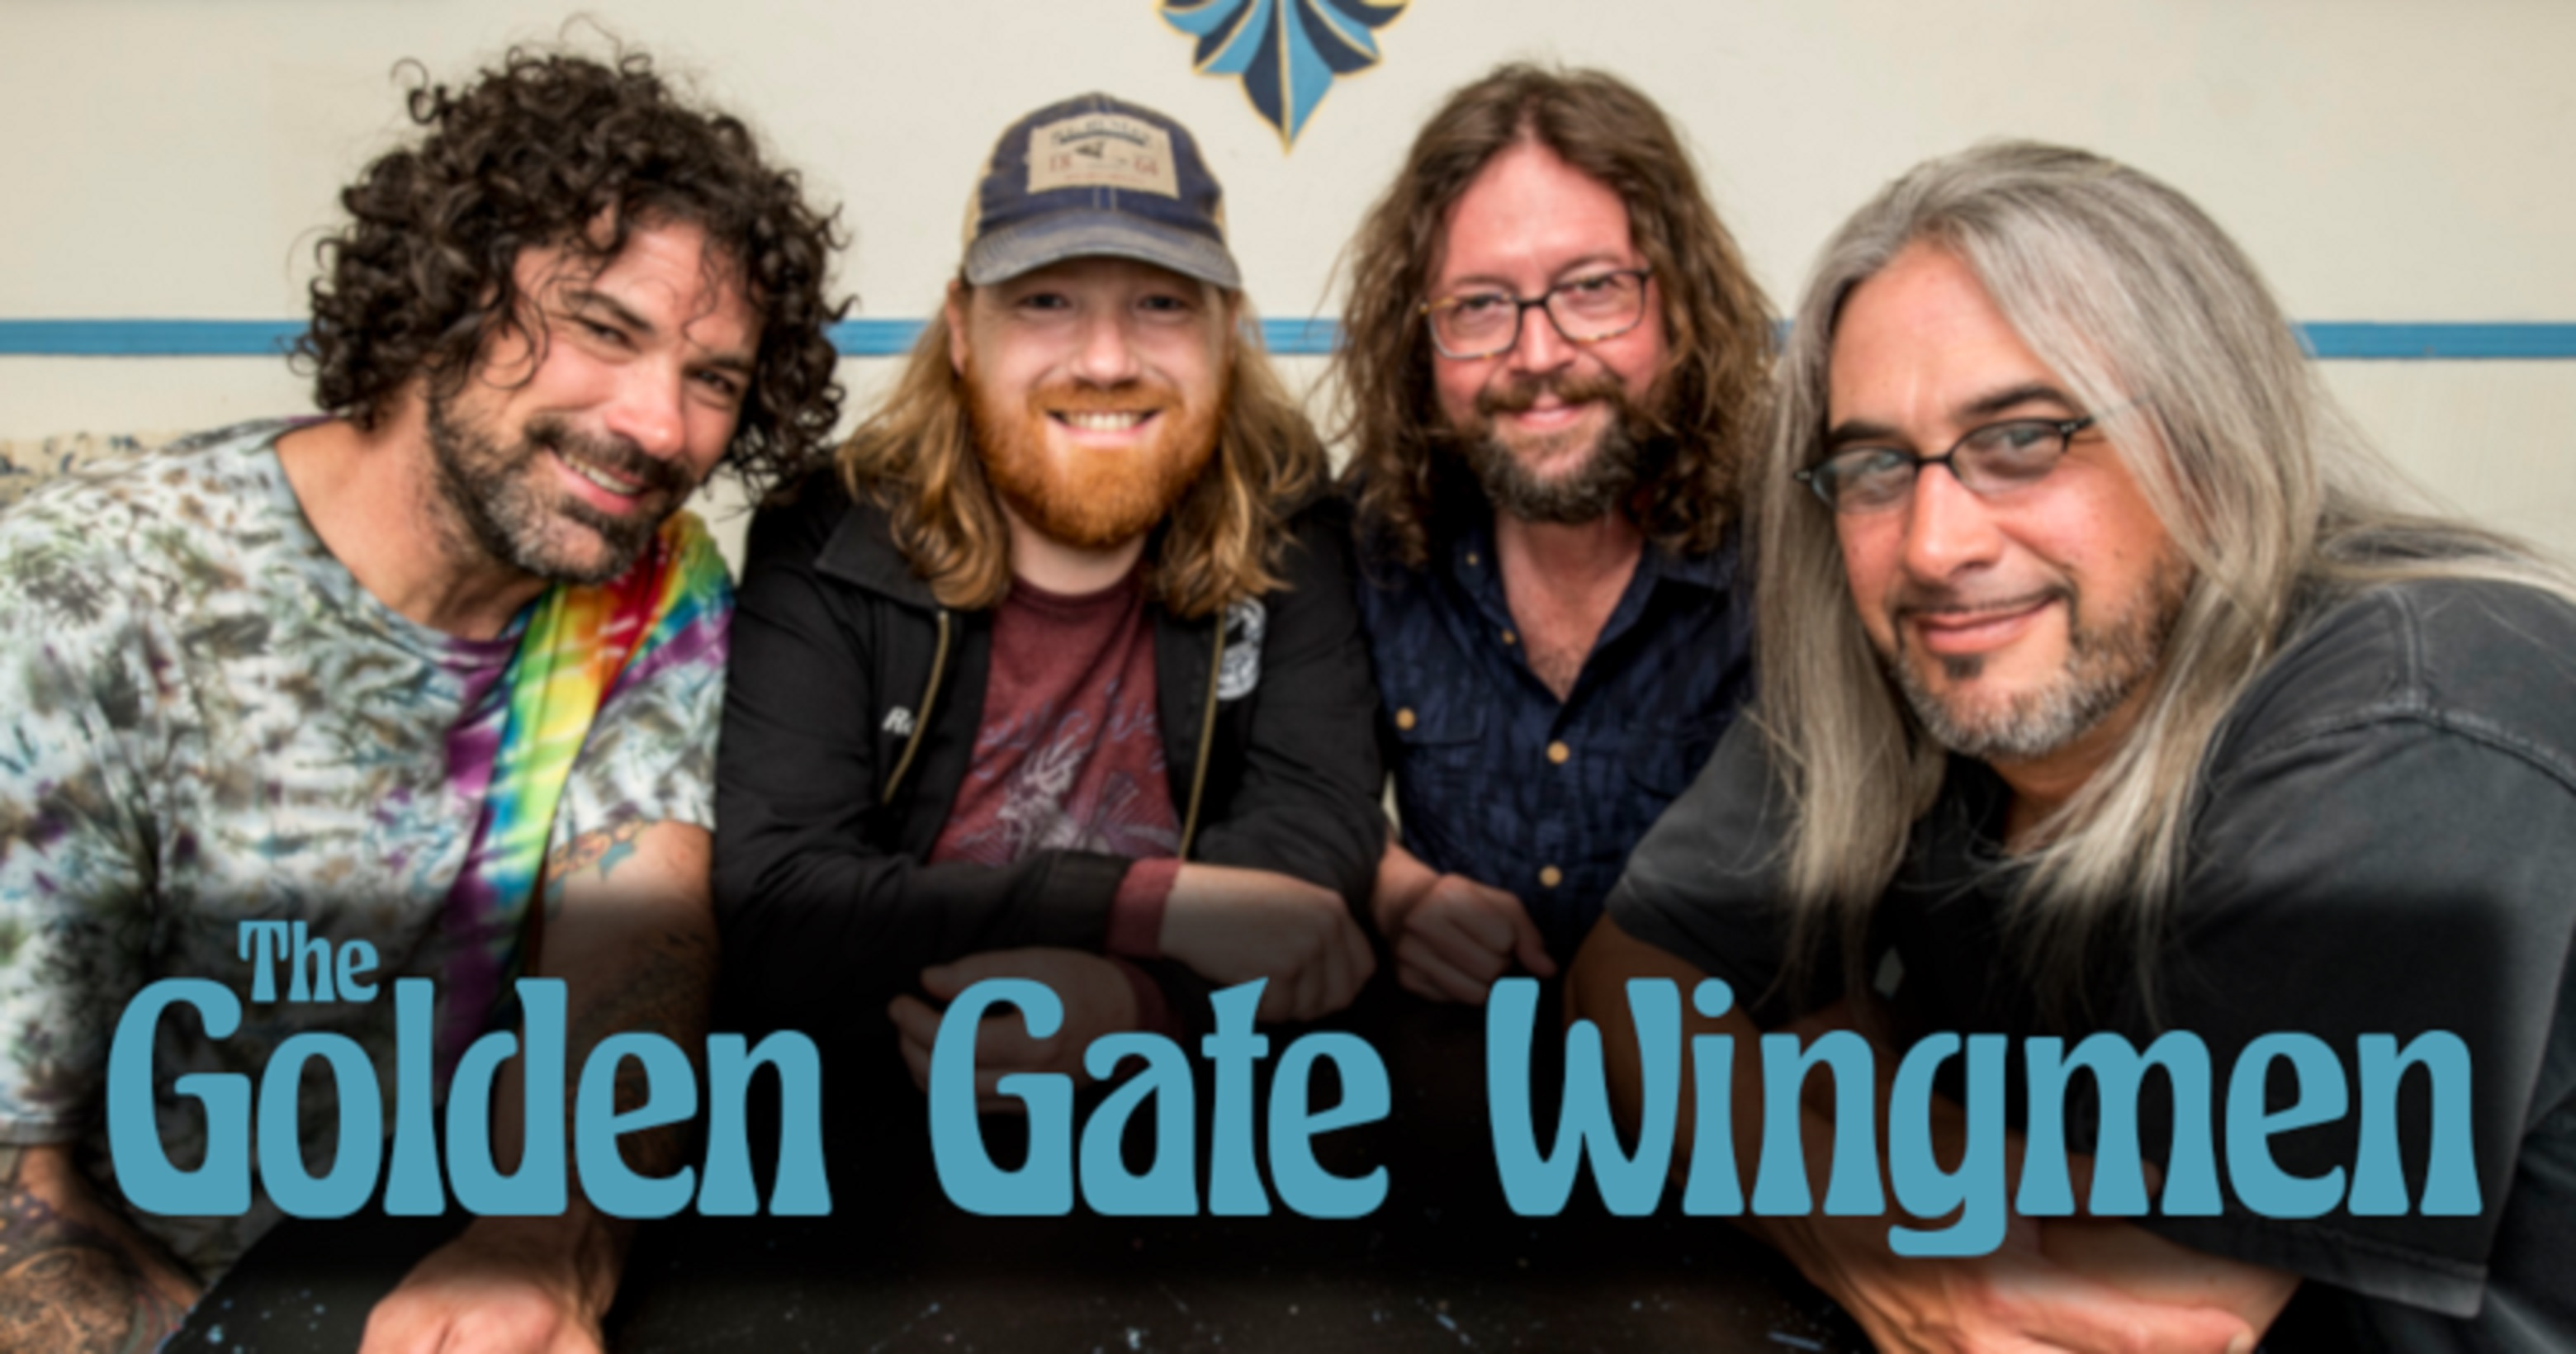 Golden Gate Wingmen Tour On Tour Now!